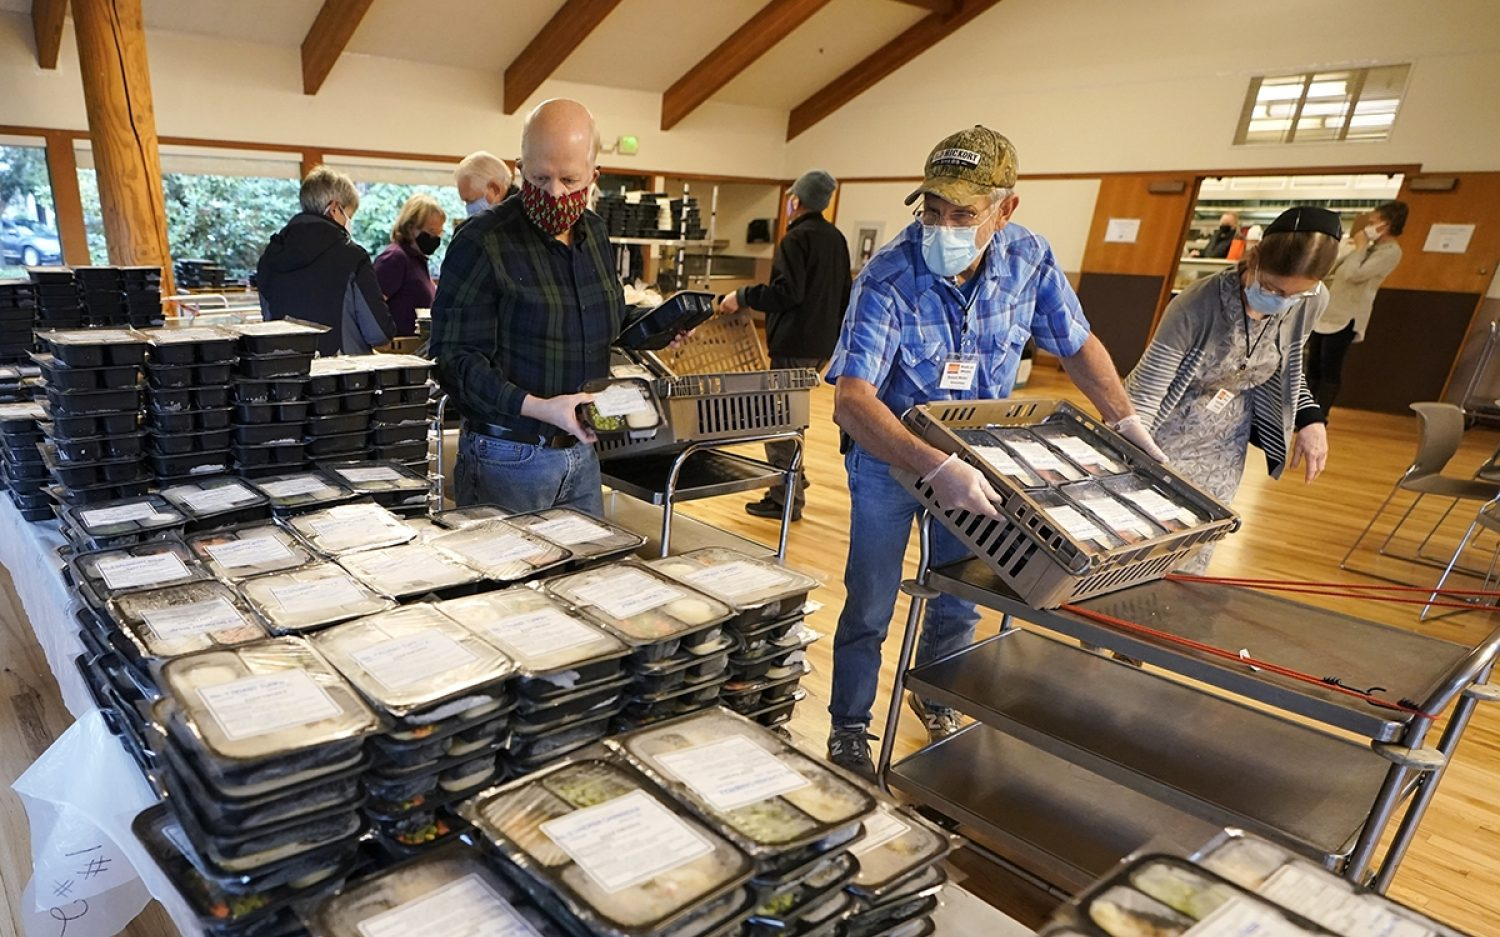 Nonprofits go through valleys and peaks with pandemic giving